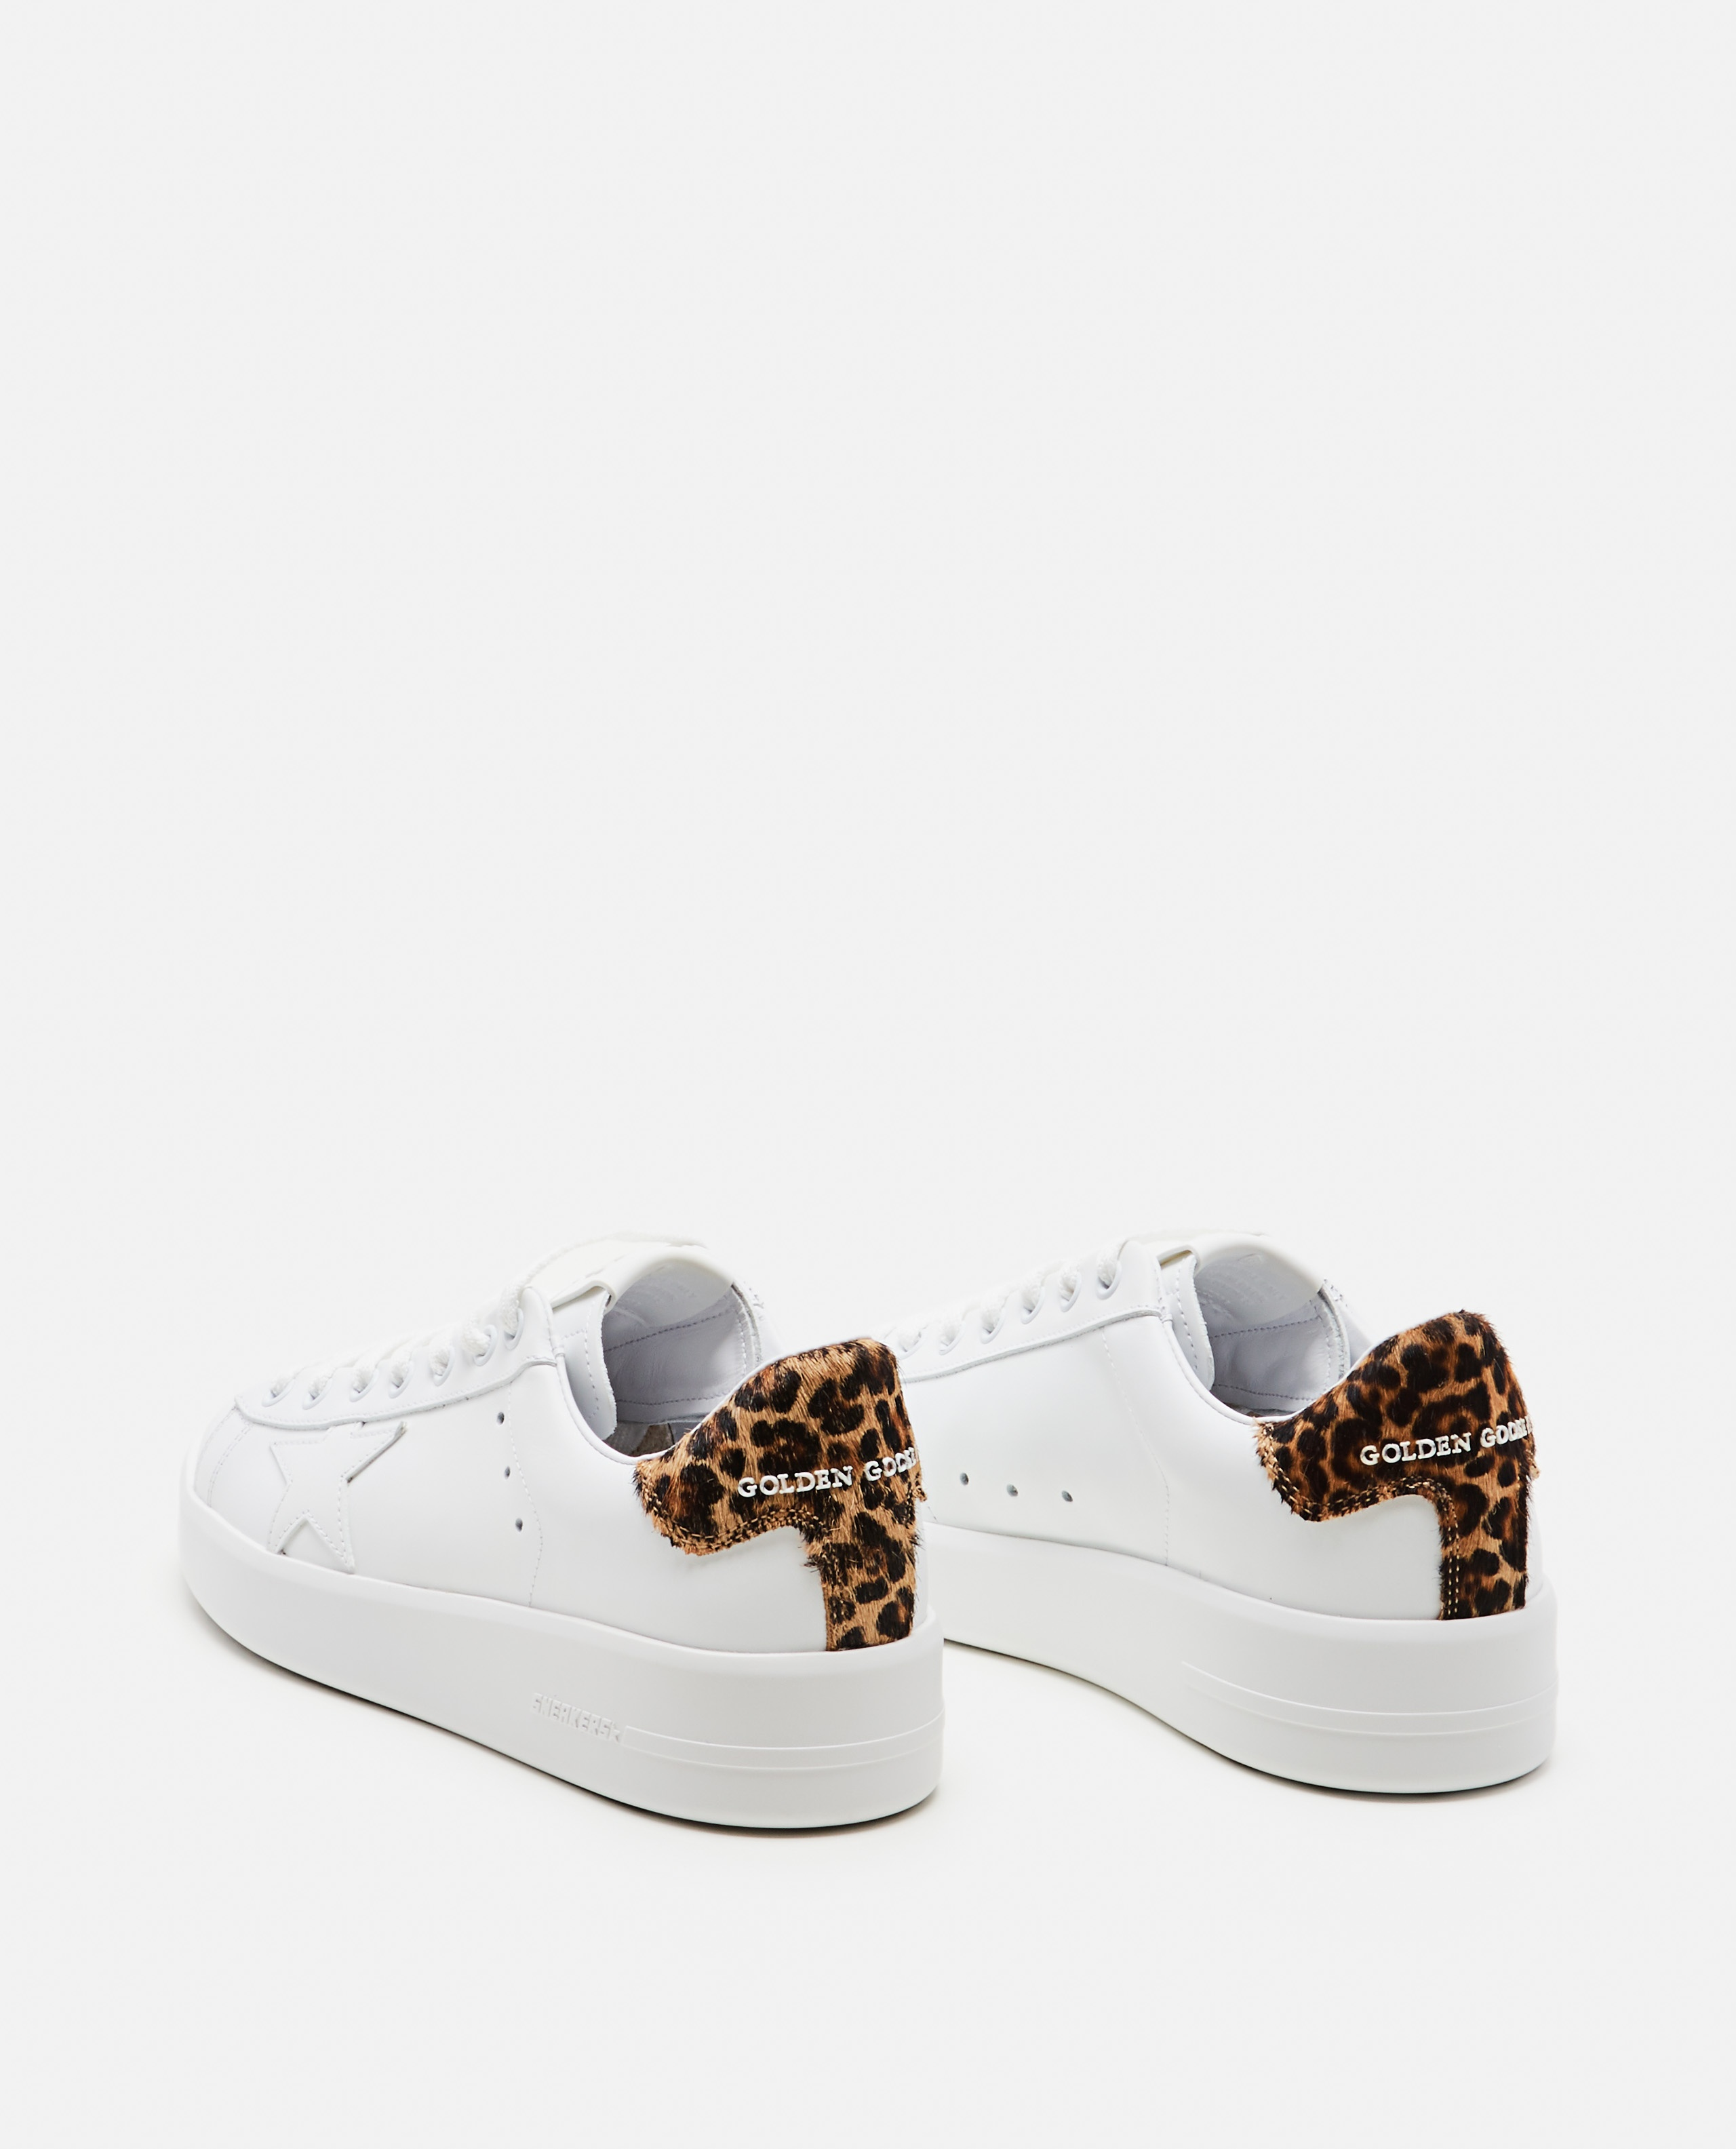 PURESTAR sneakers Women Golden Goose 000256870037945 3